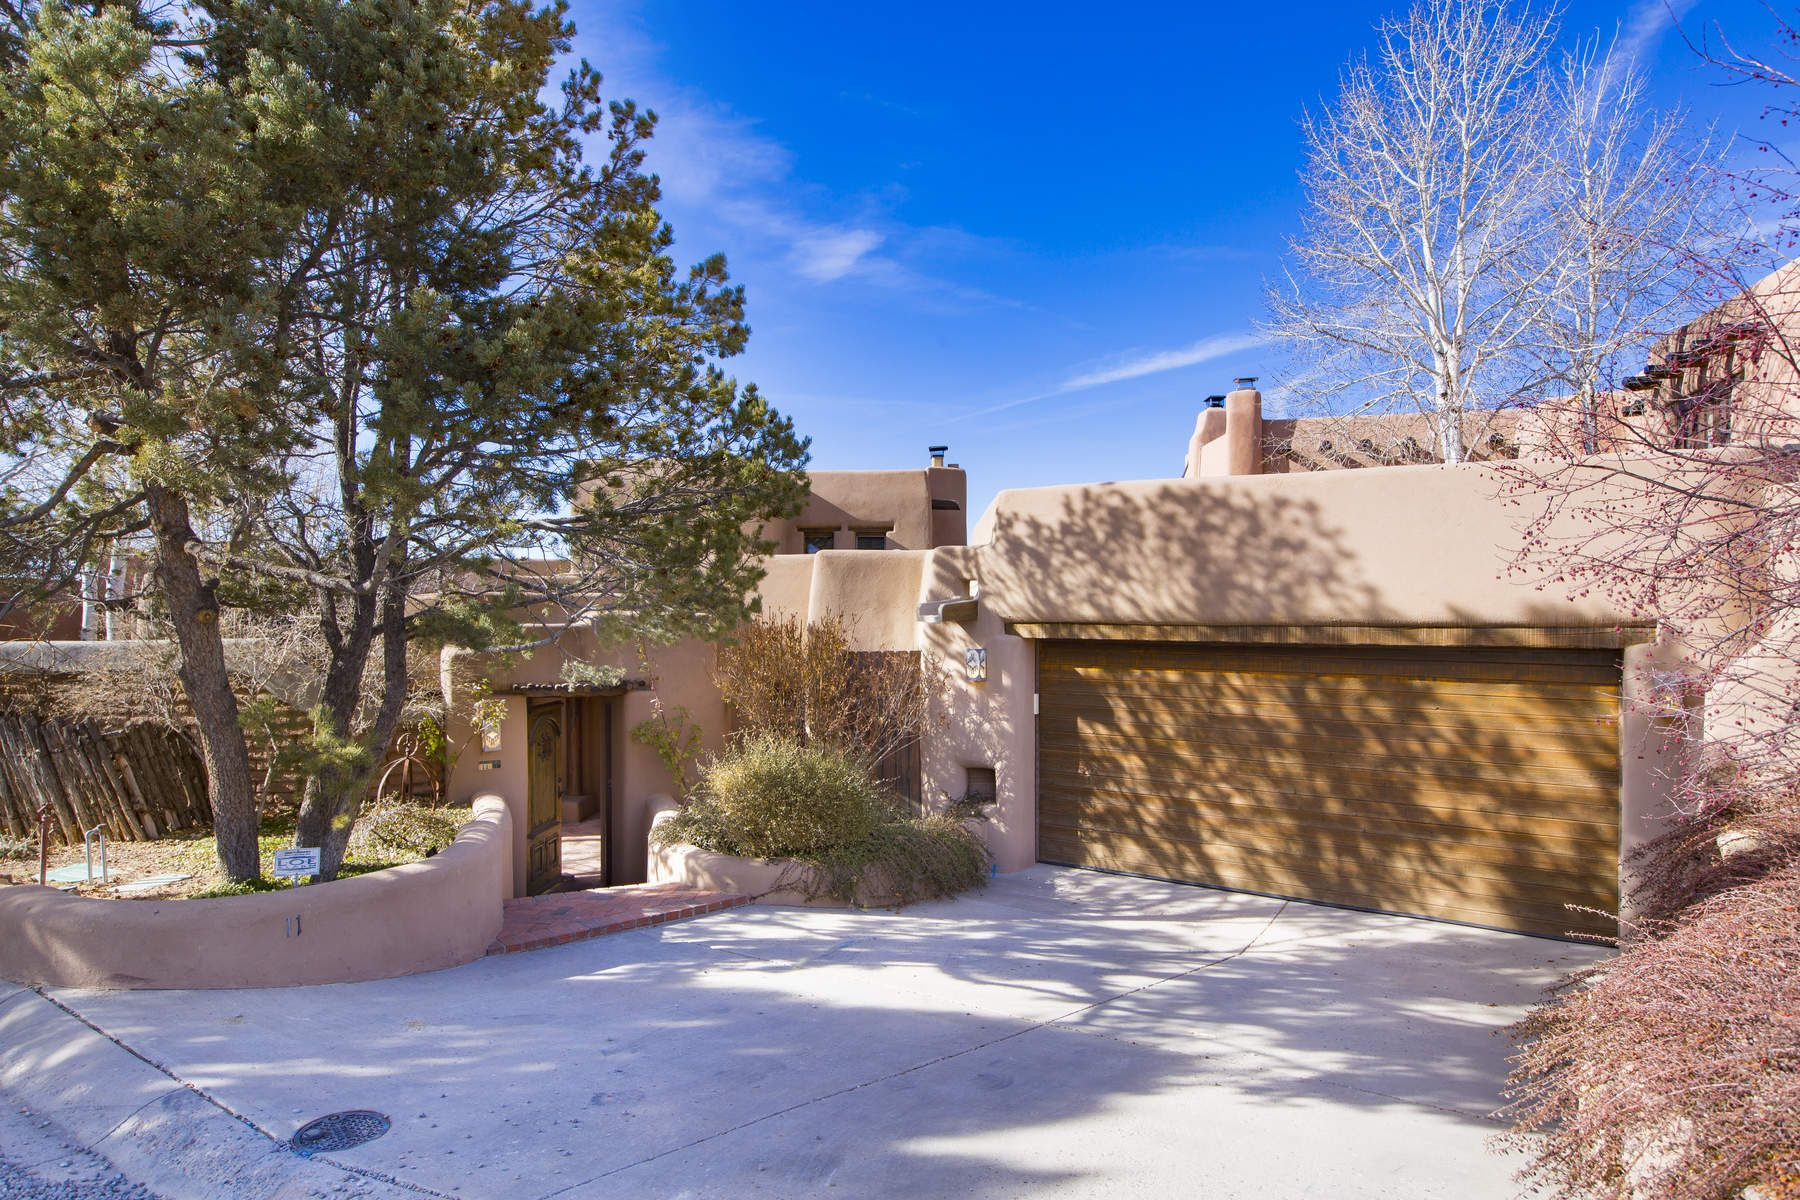 Single Family Home for Sale at 147 Gonzales 147 Gonzales Rd Unit 11, Santa Fe, New Mexico, 87501 United States